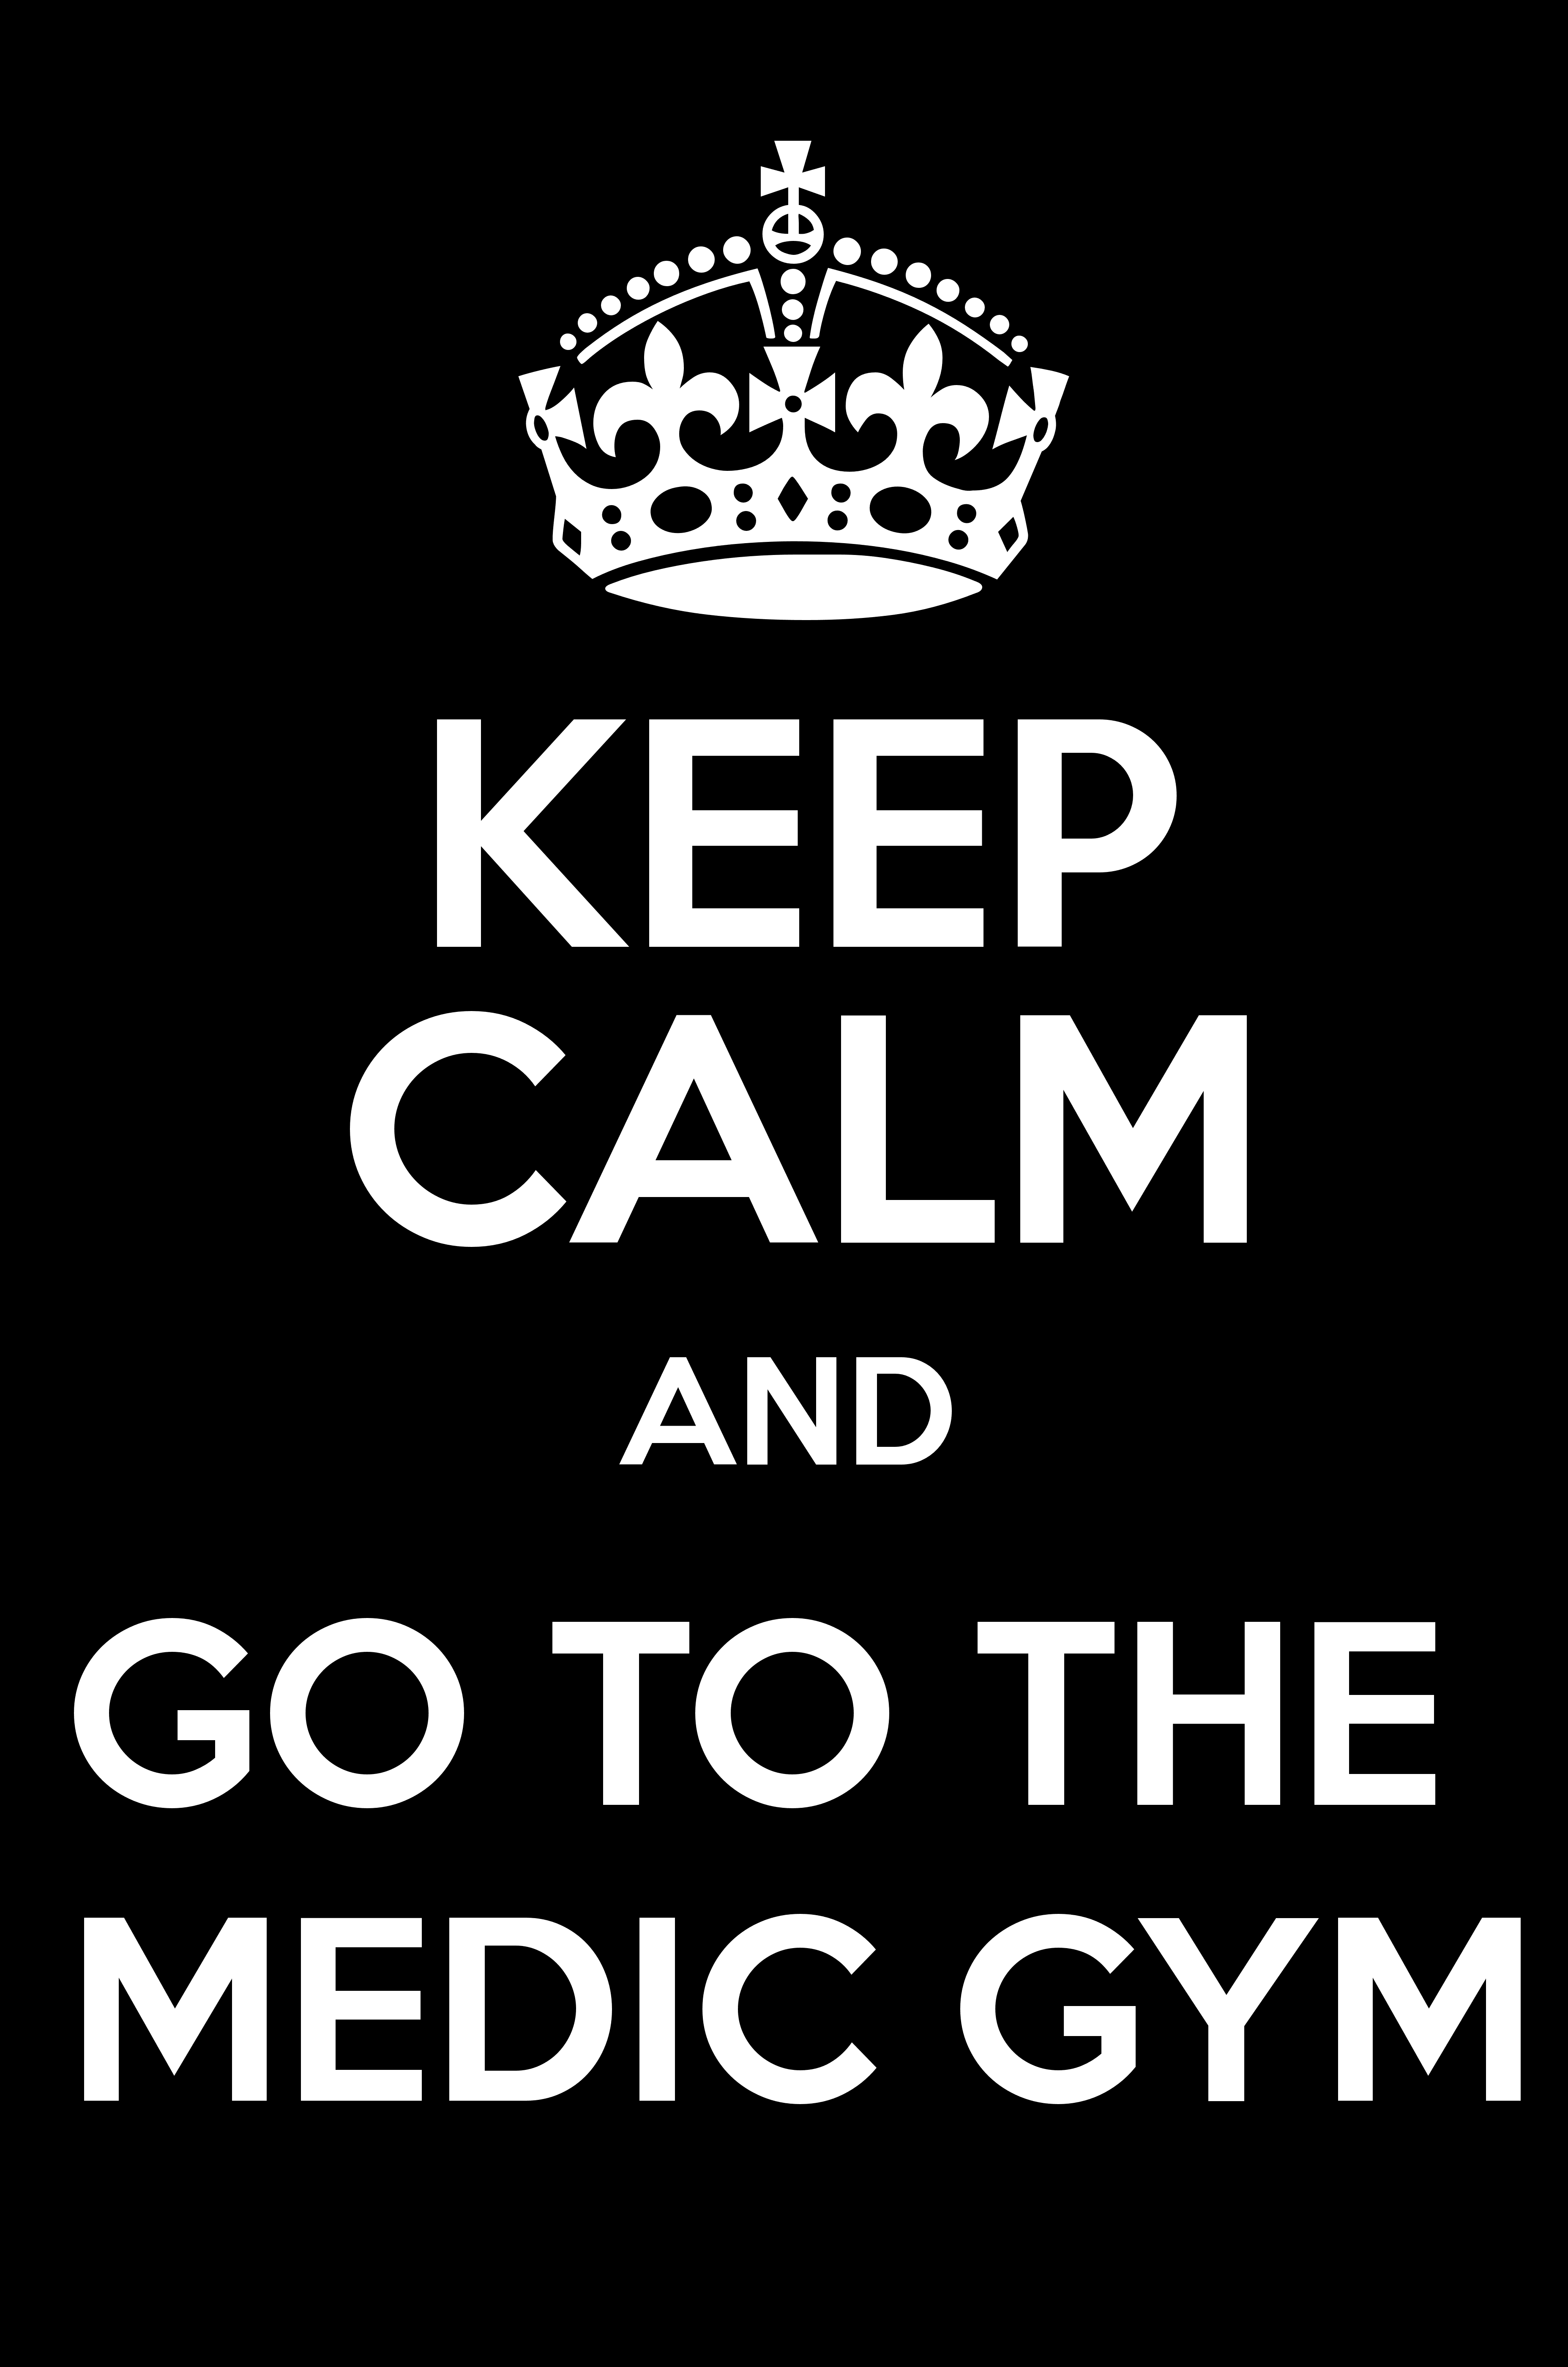 KEEP CALM AND GO TO THE MEDIC GYM - Keep Calm and Posters Generator